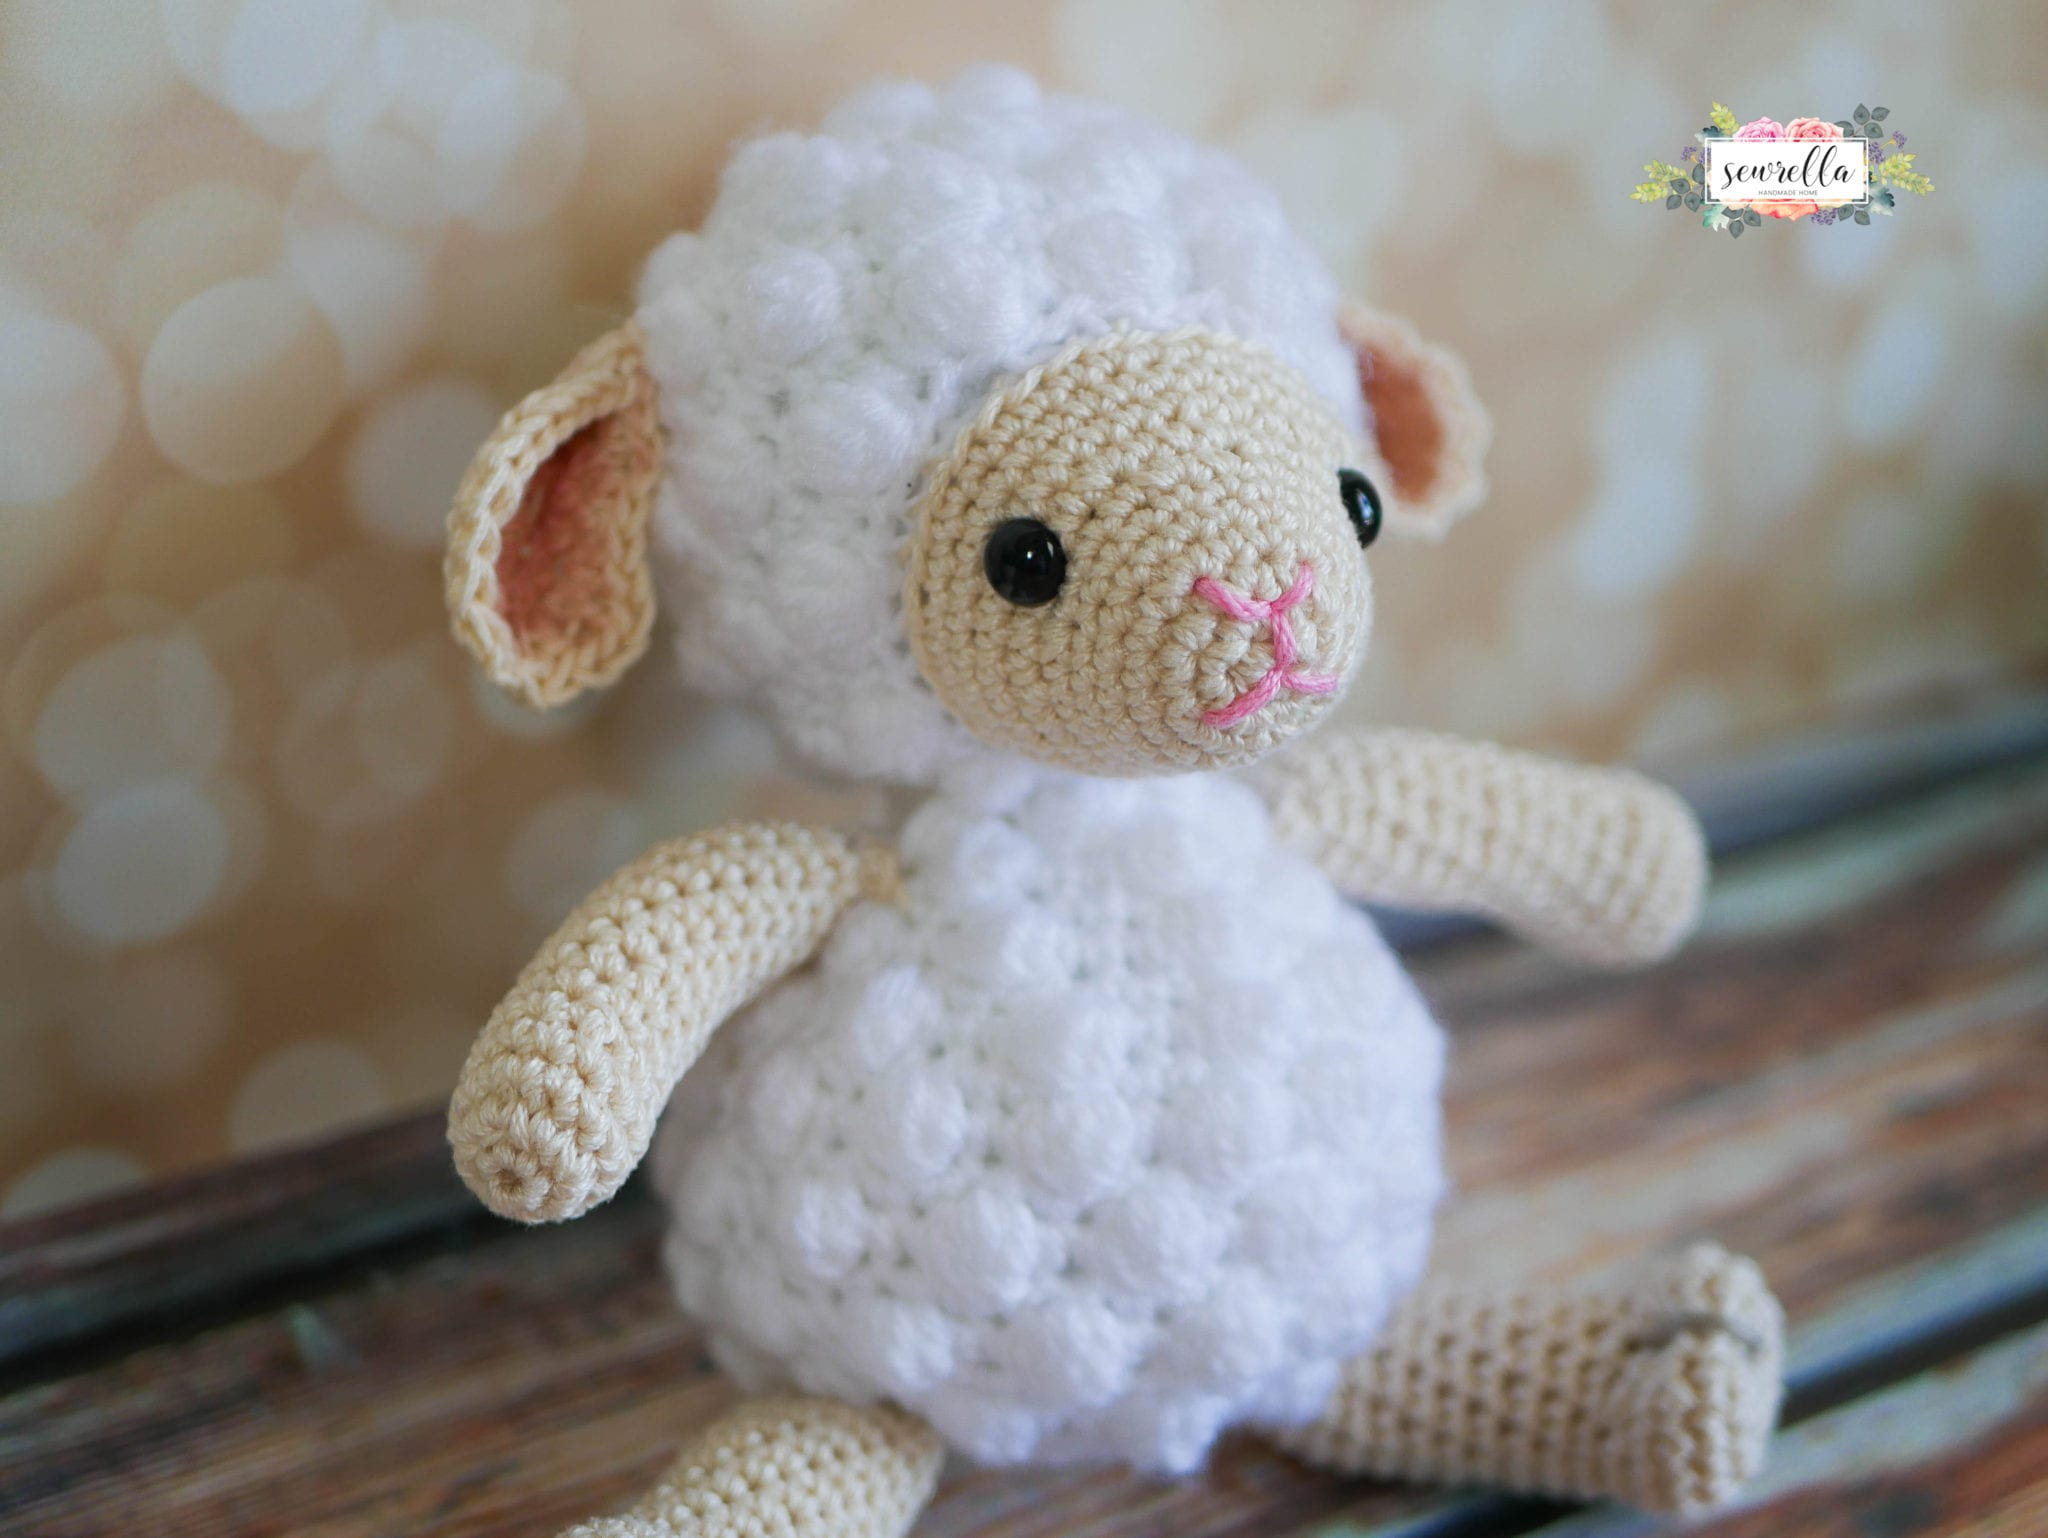 Little Crochet Lamb Sewrella